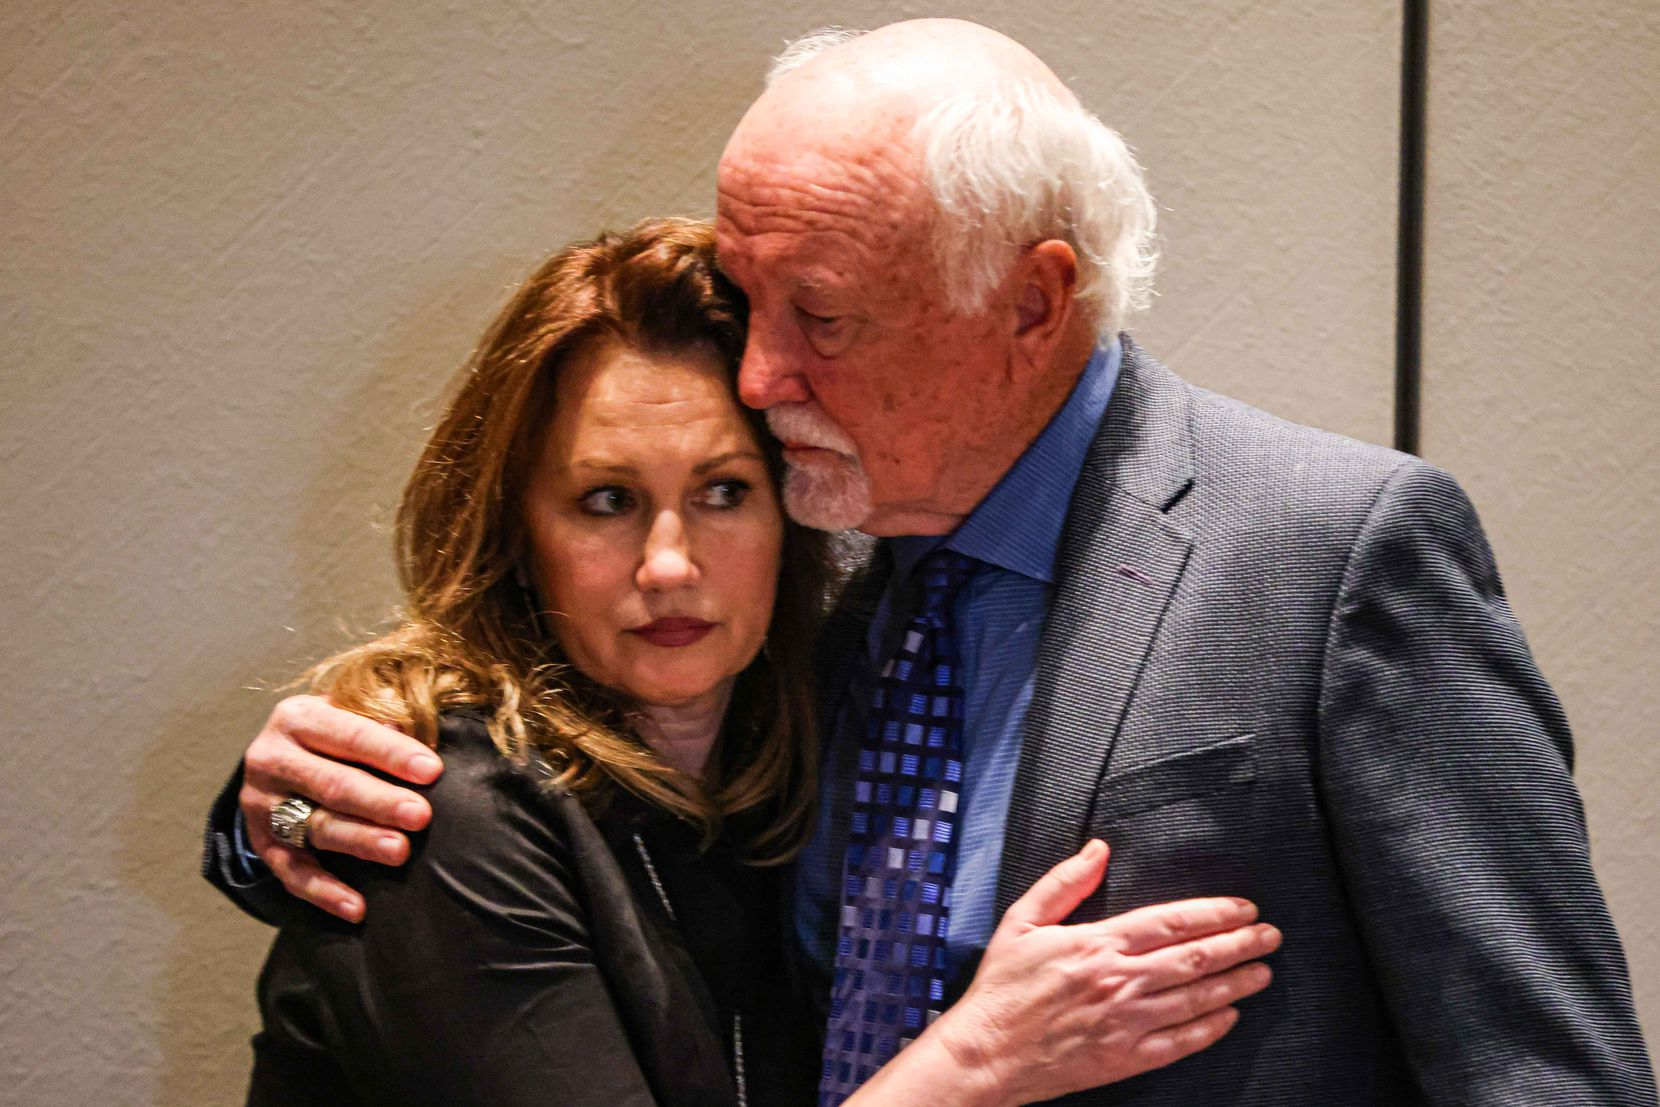 Karen Harris, whose mother was slain in March 2018, and her husband, Dallas Cowboys Hall of Famer Cliff Harris, hugged after Wednesday's news conference in Plano.